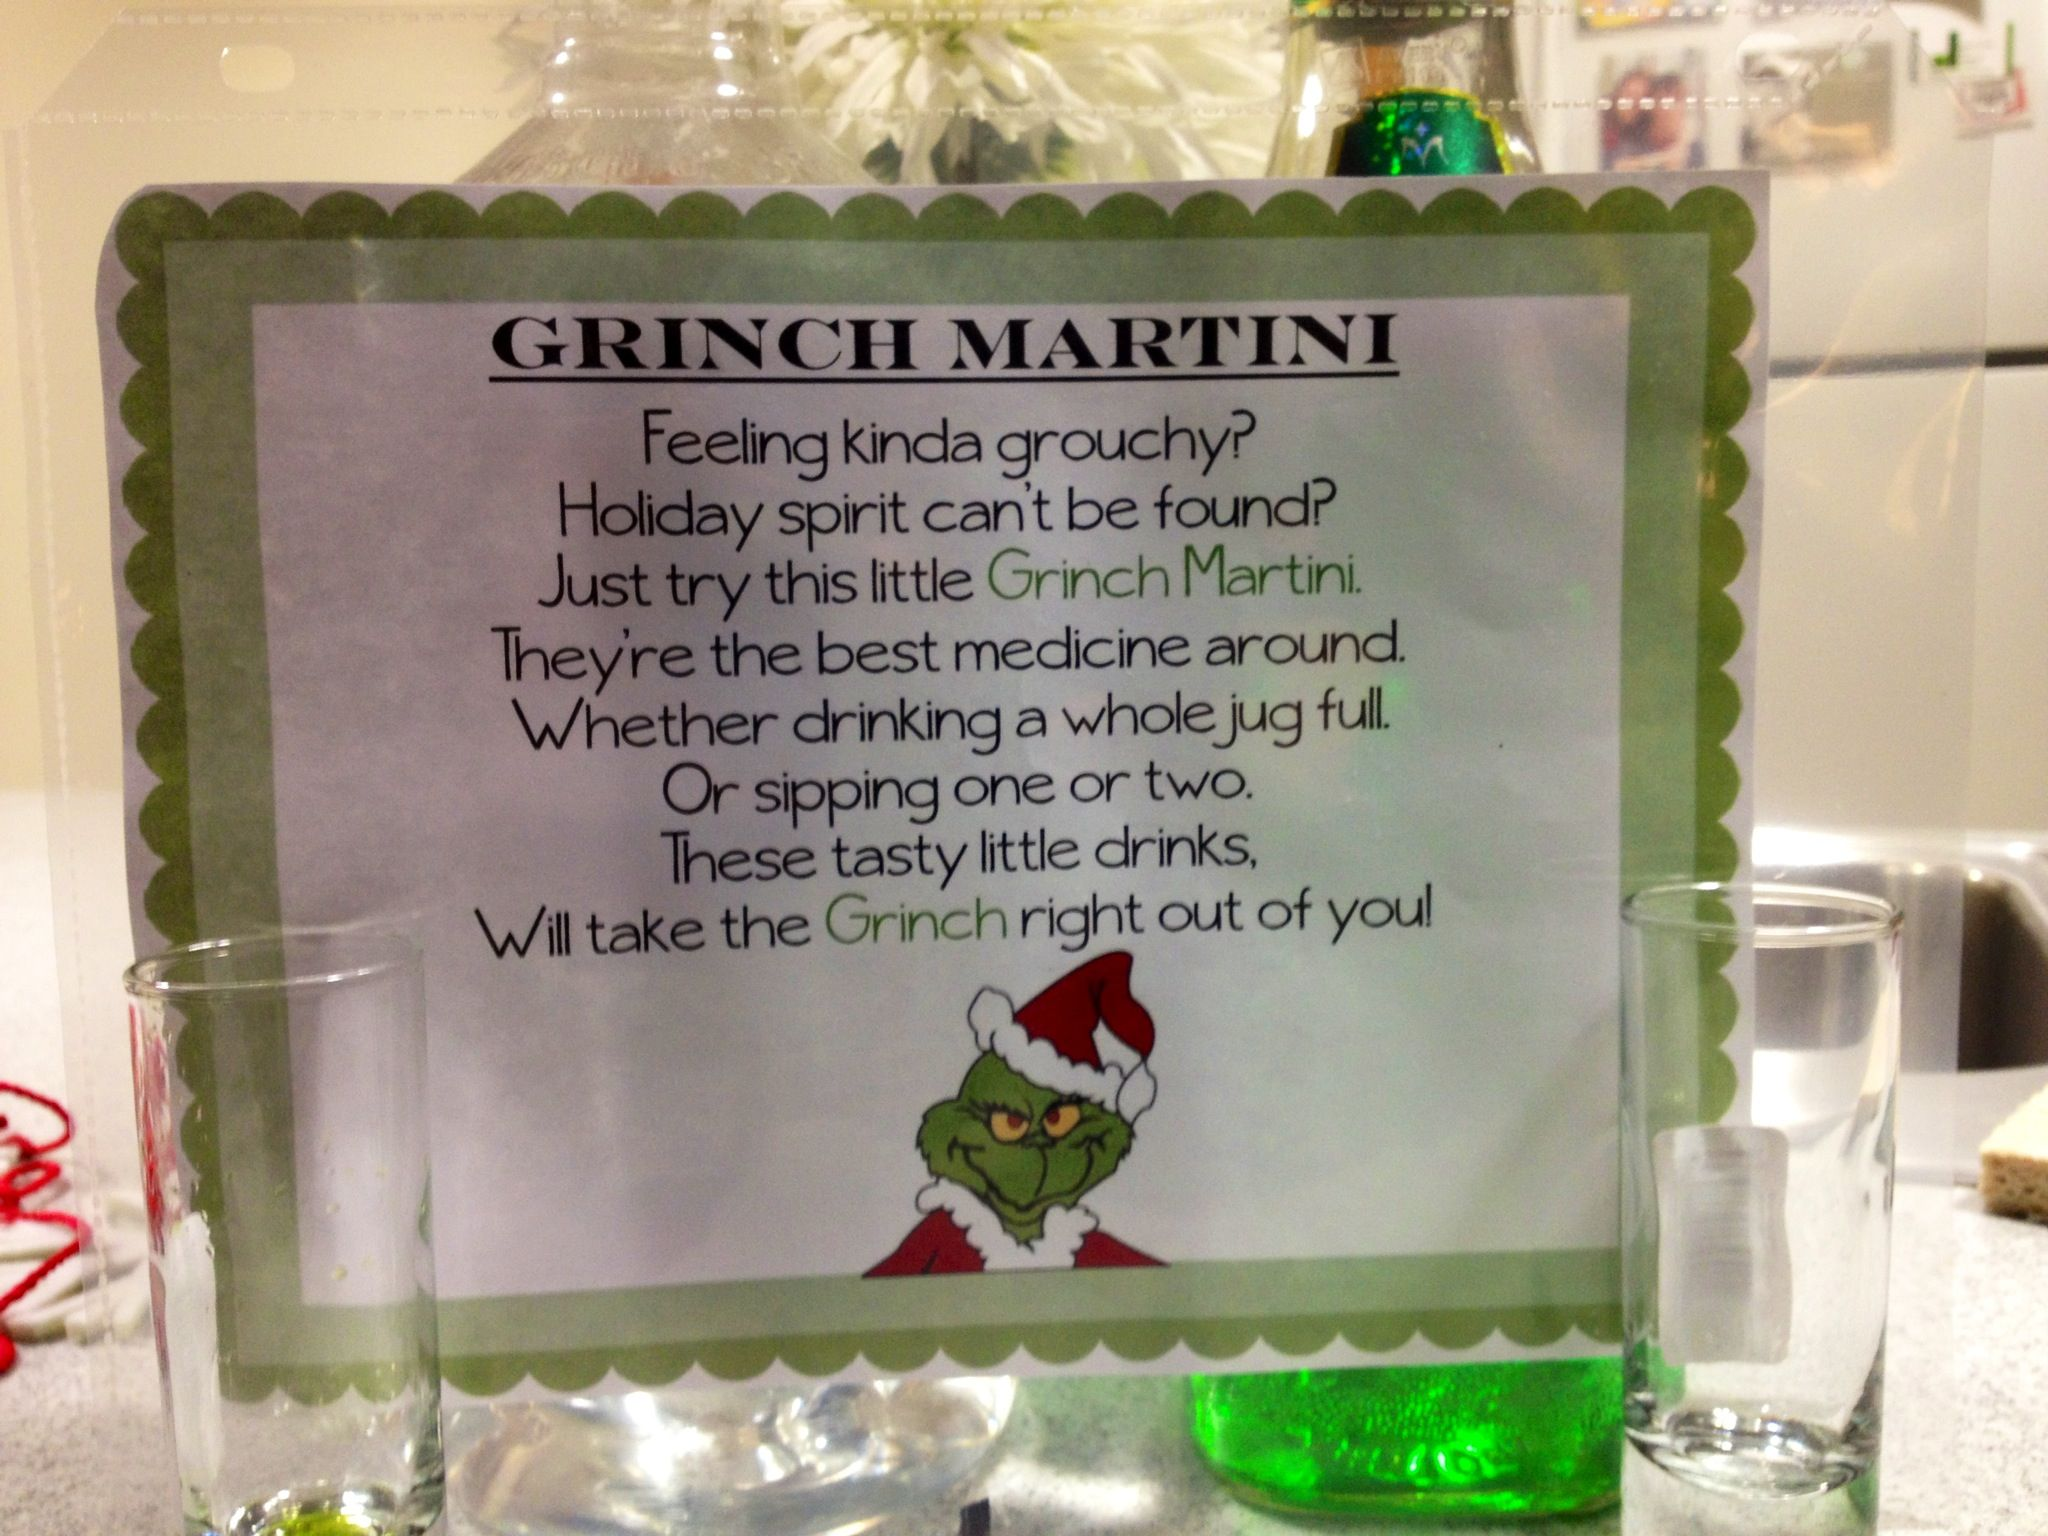 Grinch Martini poem for our Holiday Party | Grinch | Pinterest